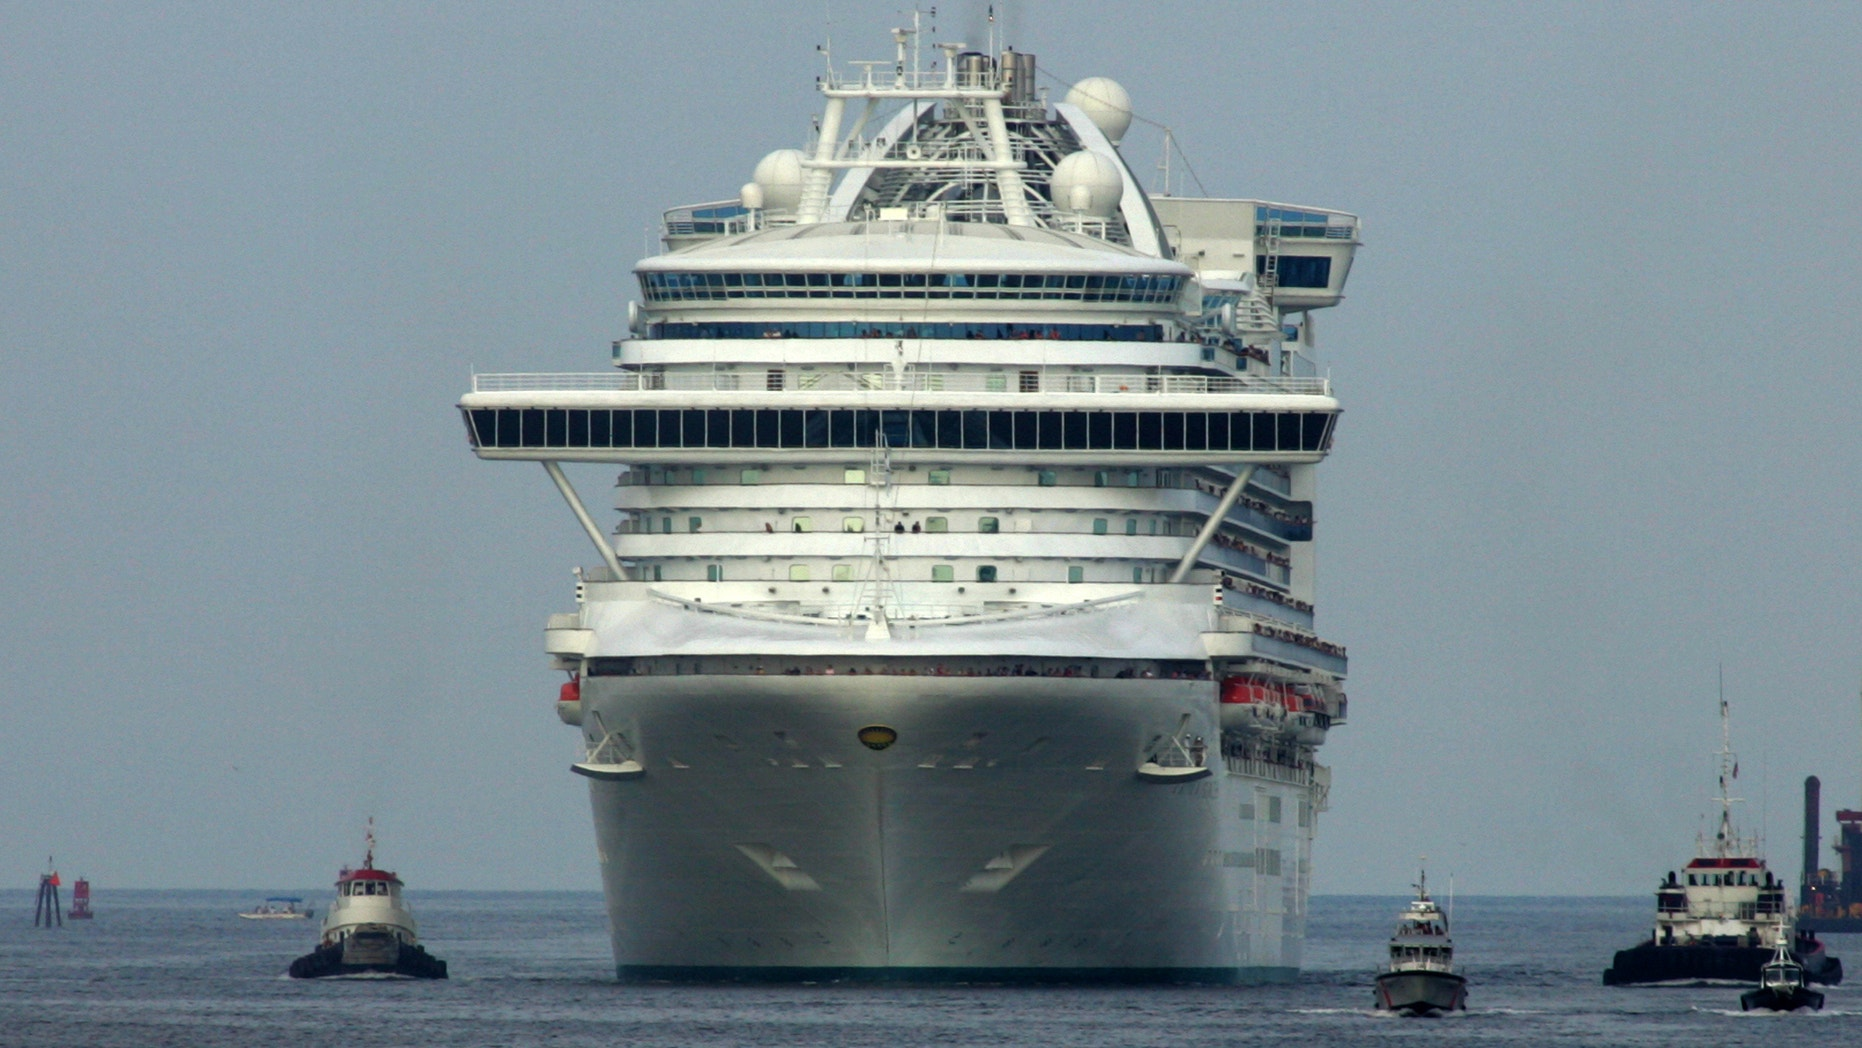 The cruise ship Crown Princess travels into Port Canaveral, Florida.